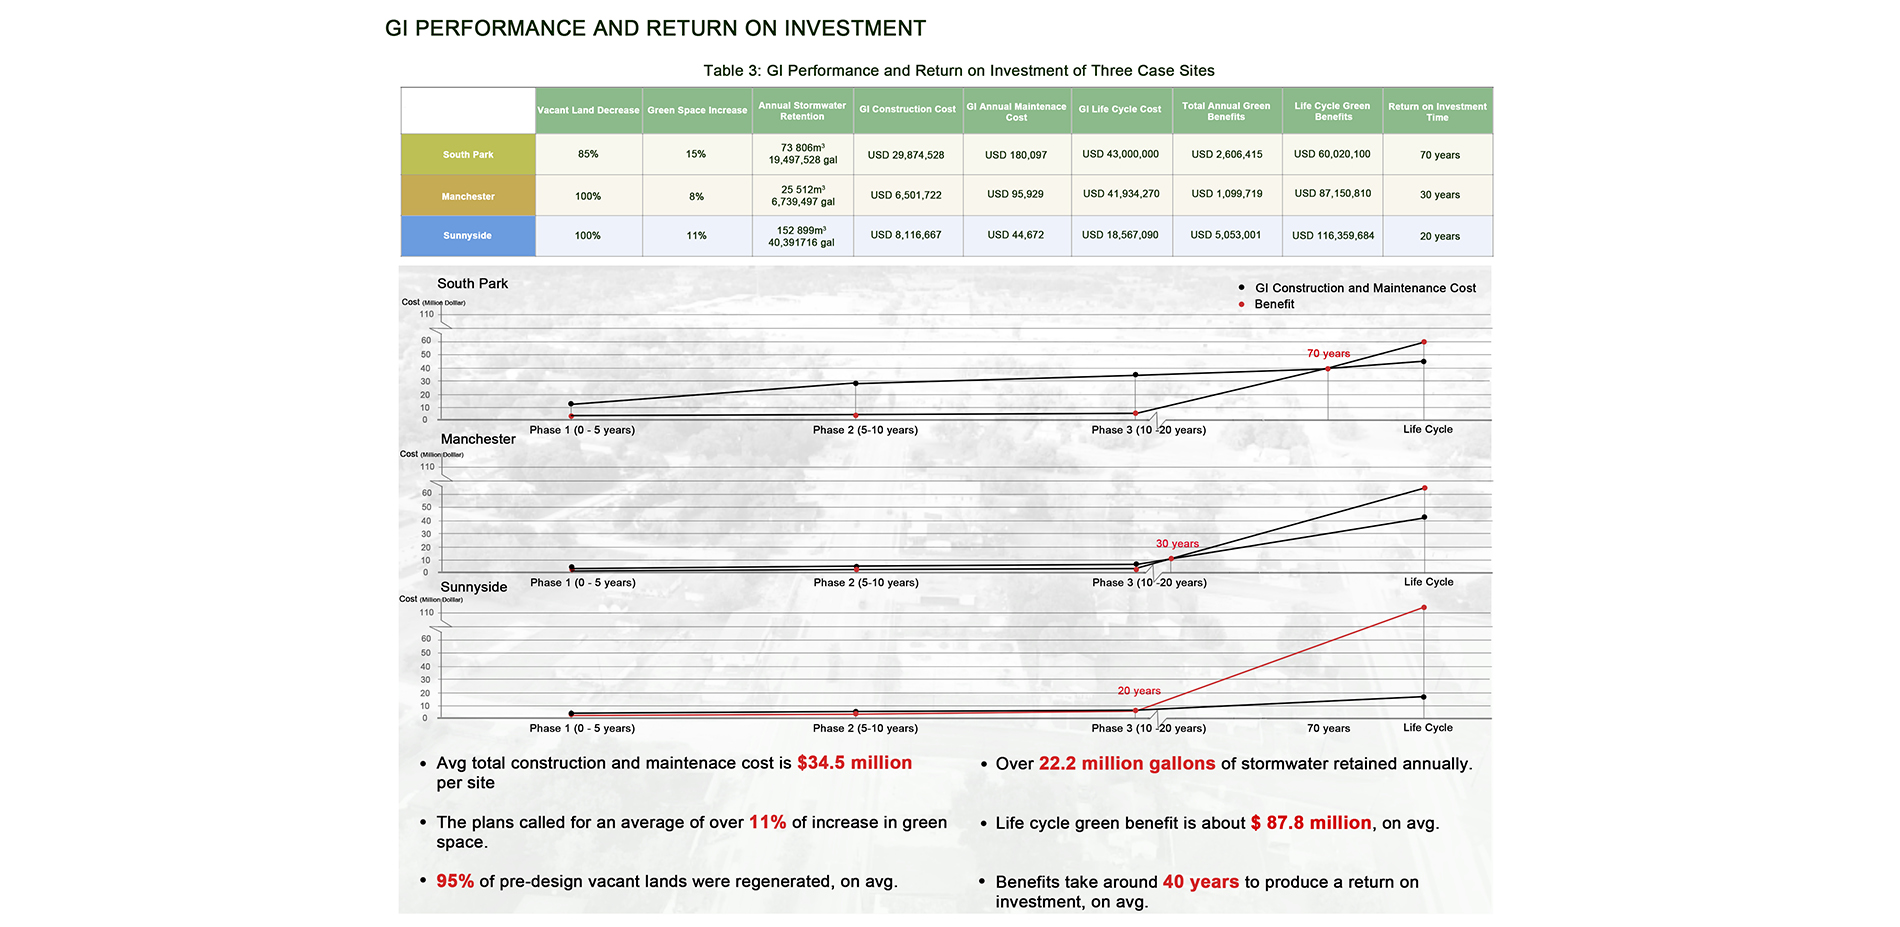 GI performance and return on investment